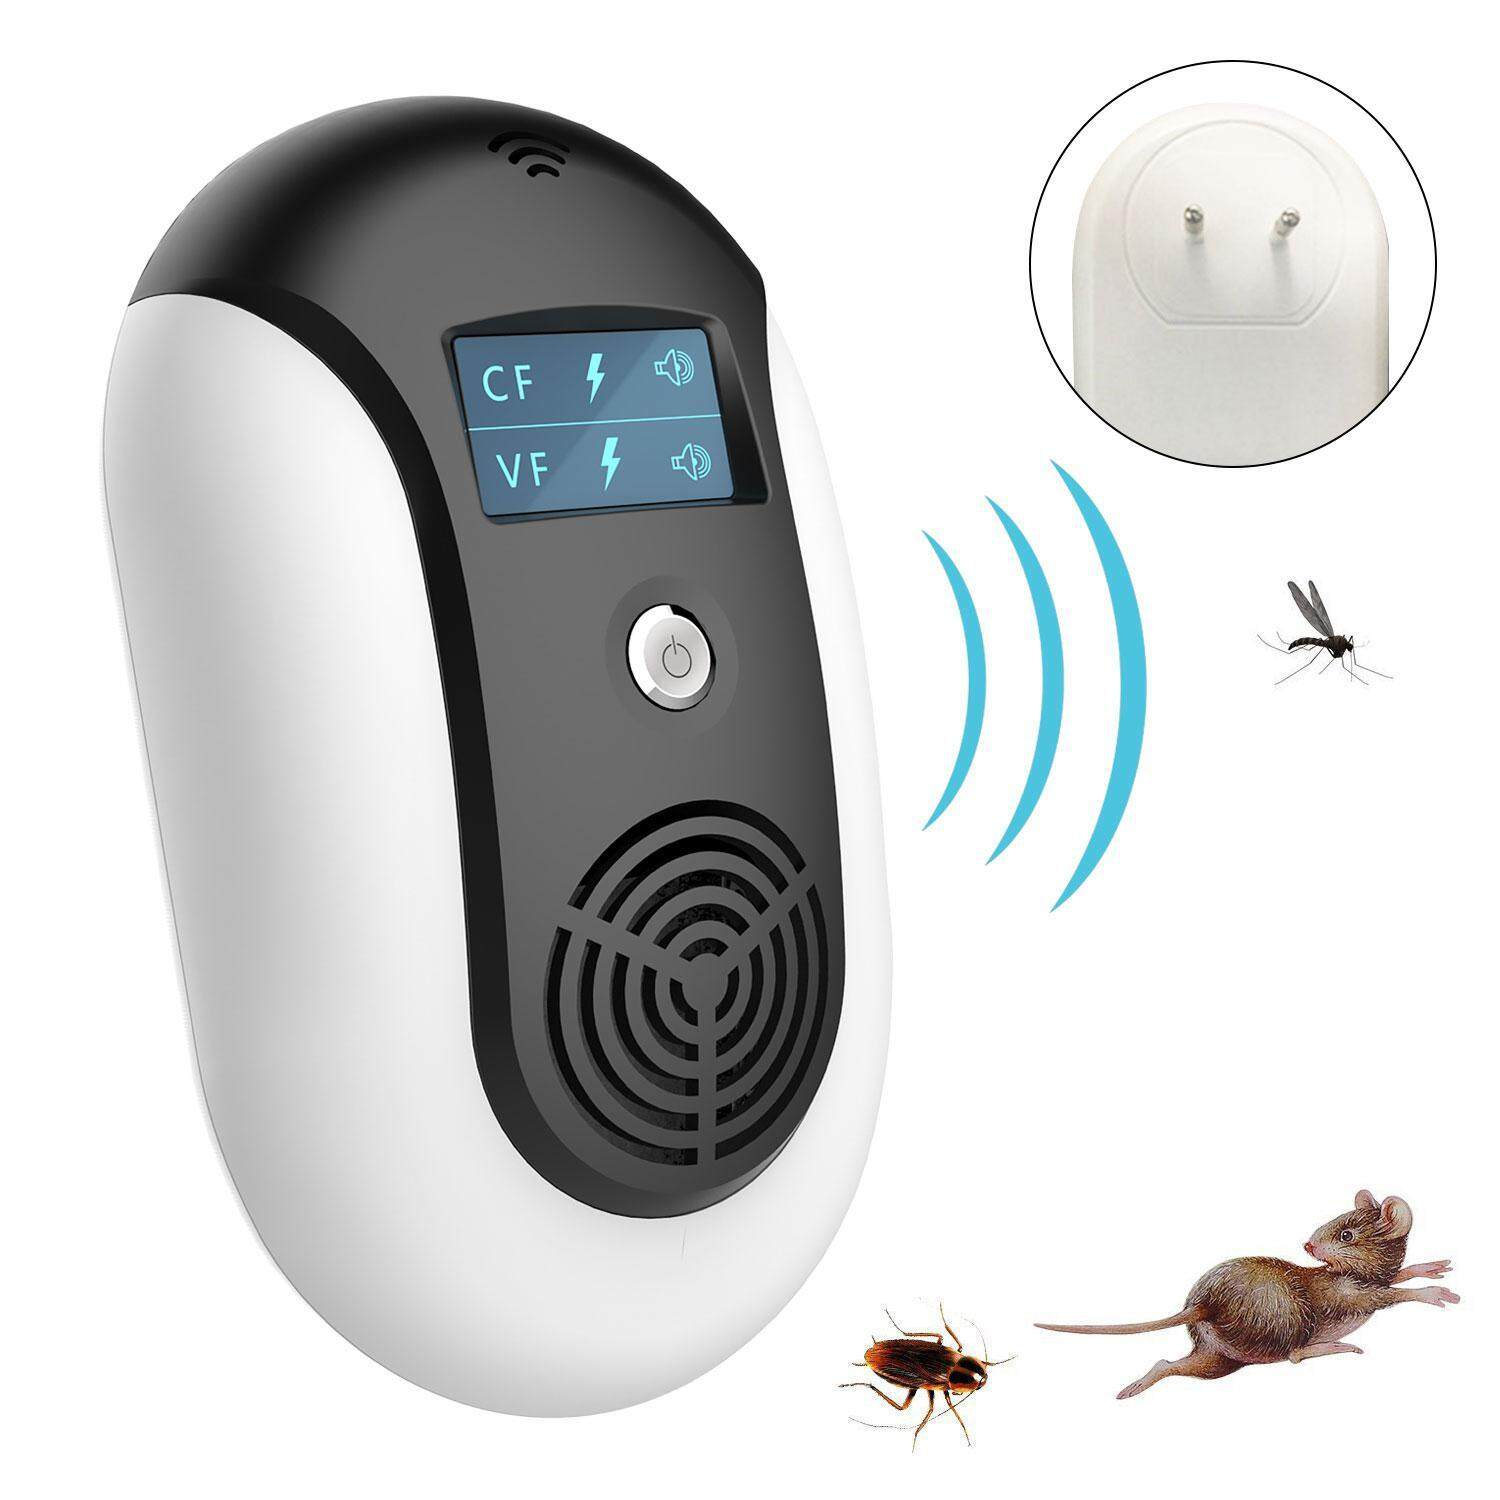 EterSummer Ultrasonic Electromagnetic Pest Repellent Electronic Control Smart Mosquito Repeller Plug in Home Indoor and Warehouse Get Rid of bug,rats,squirrel,Flea,Roaches,Rodent,Insect image on snachetto.com